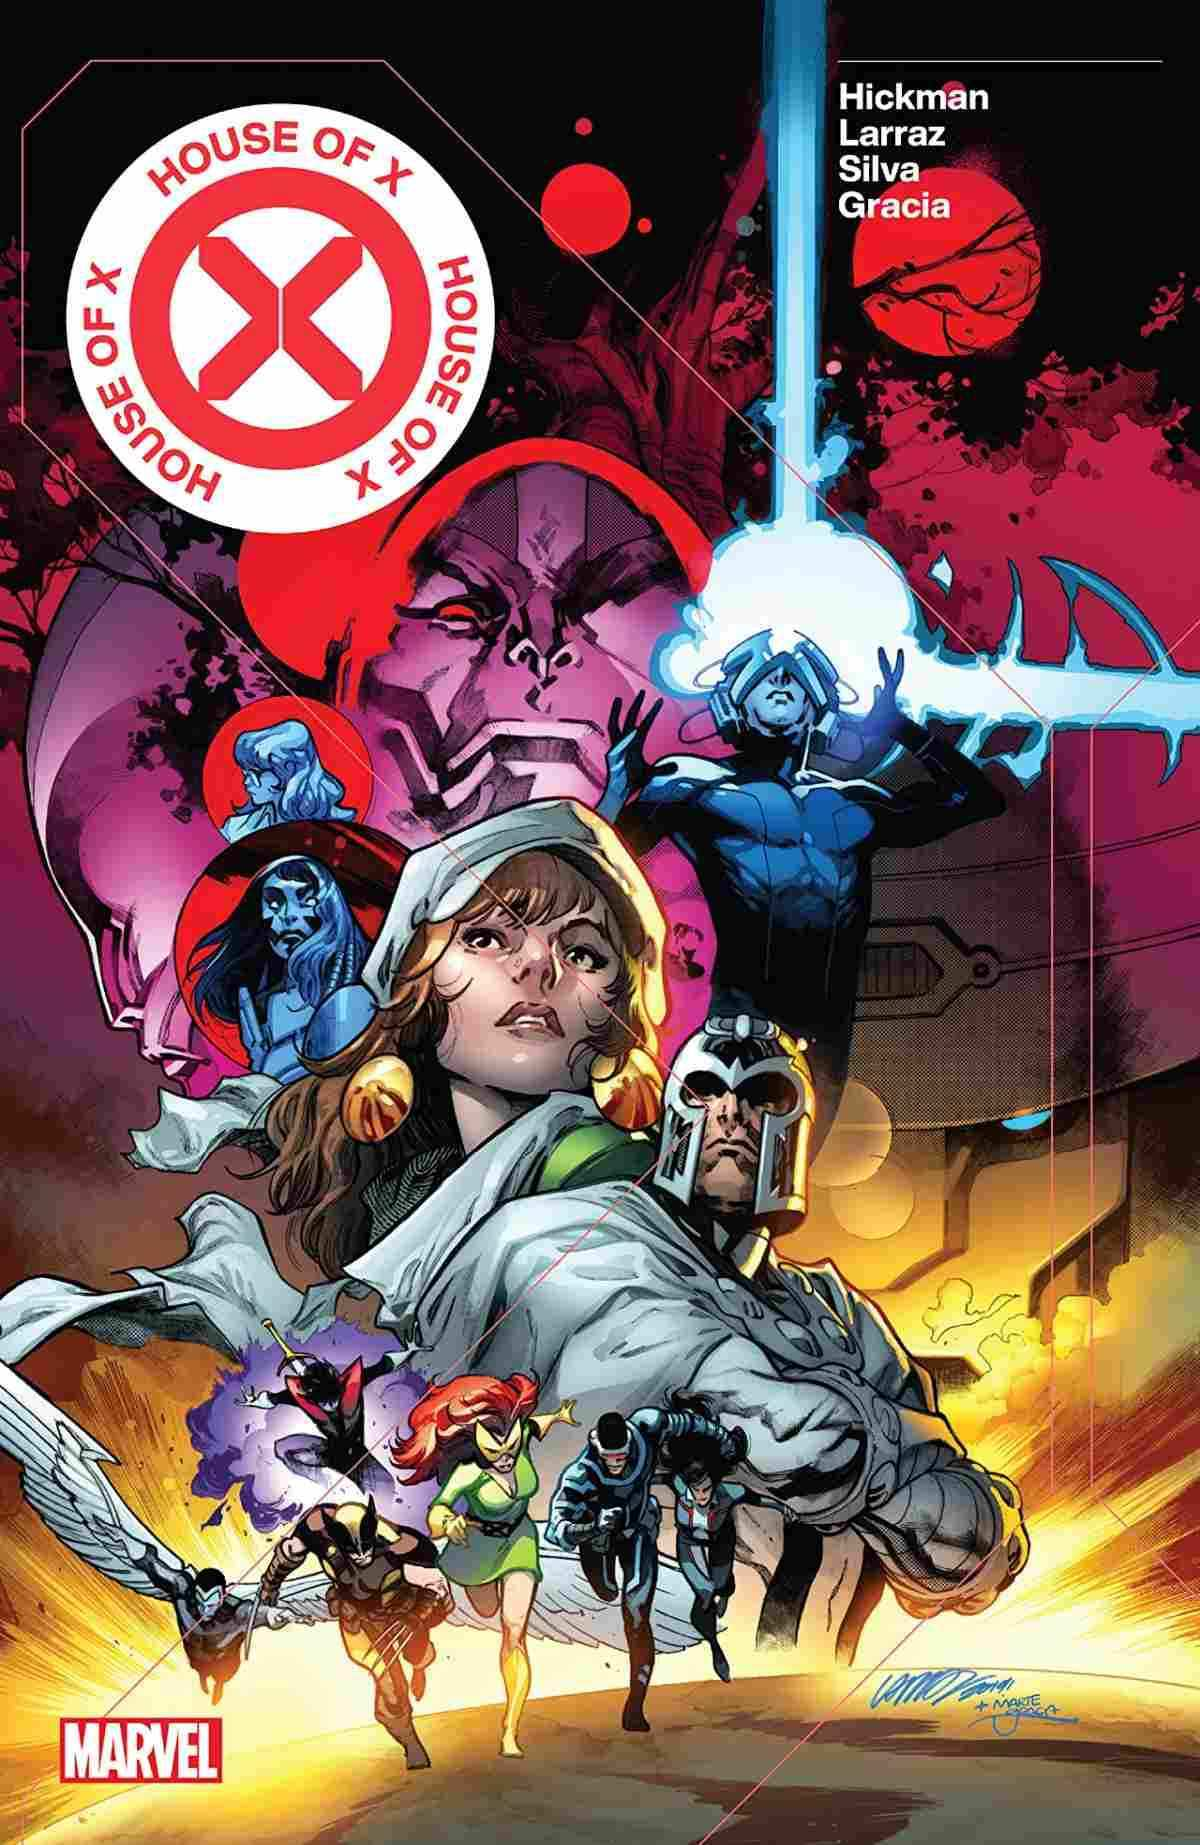 House of X Power of X